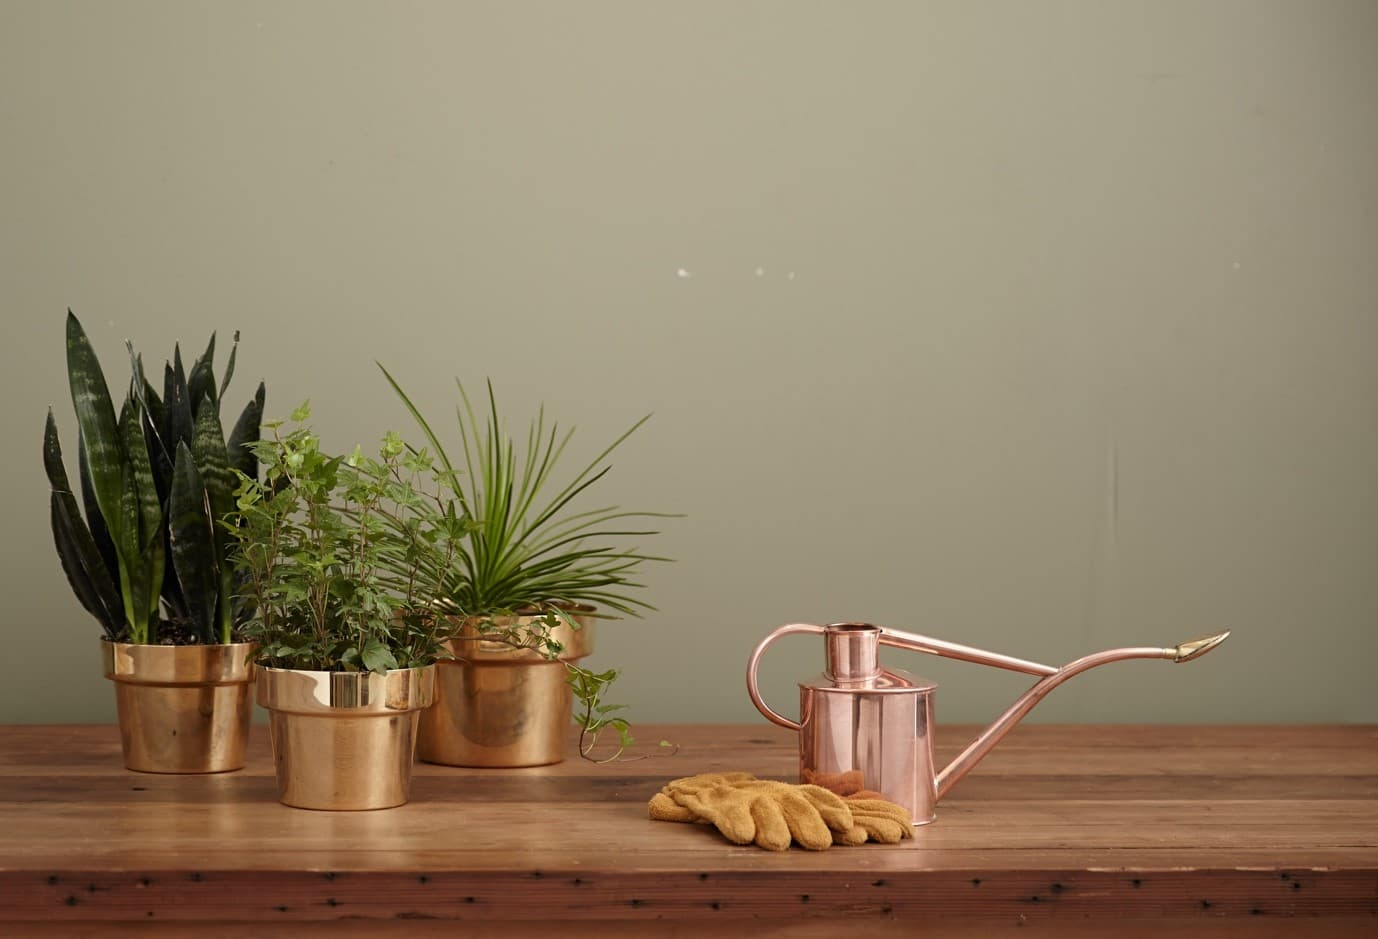 A wooden table with indoor plants in copper plant pots and rose gold watering can.